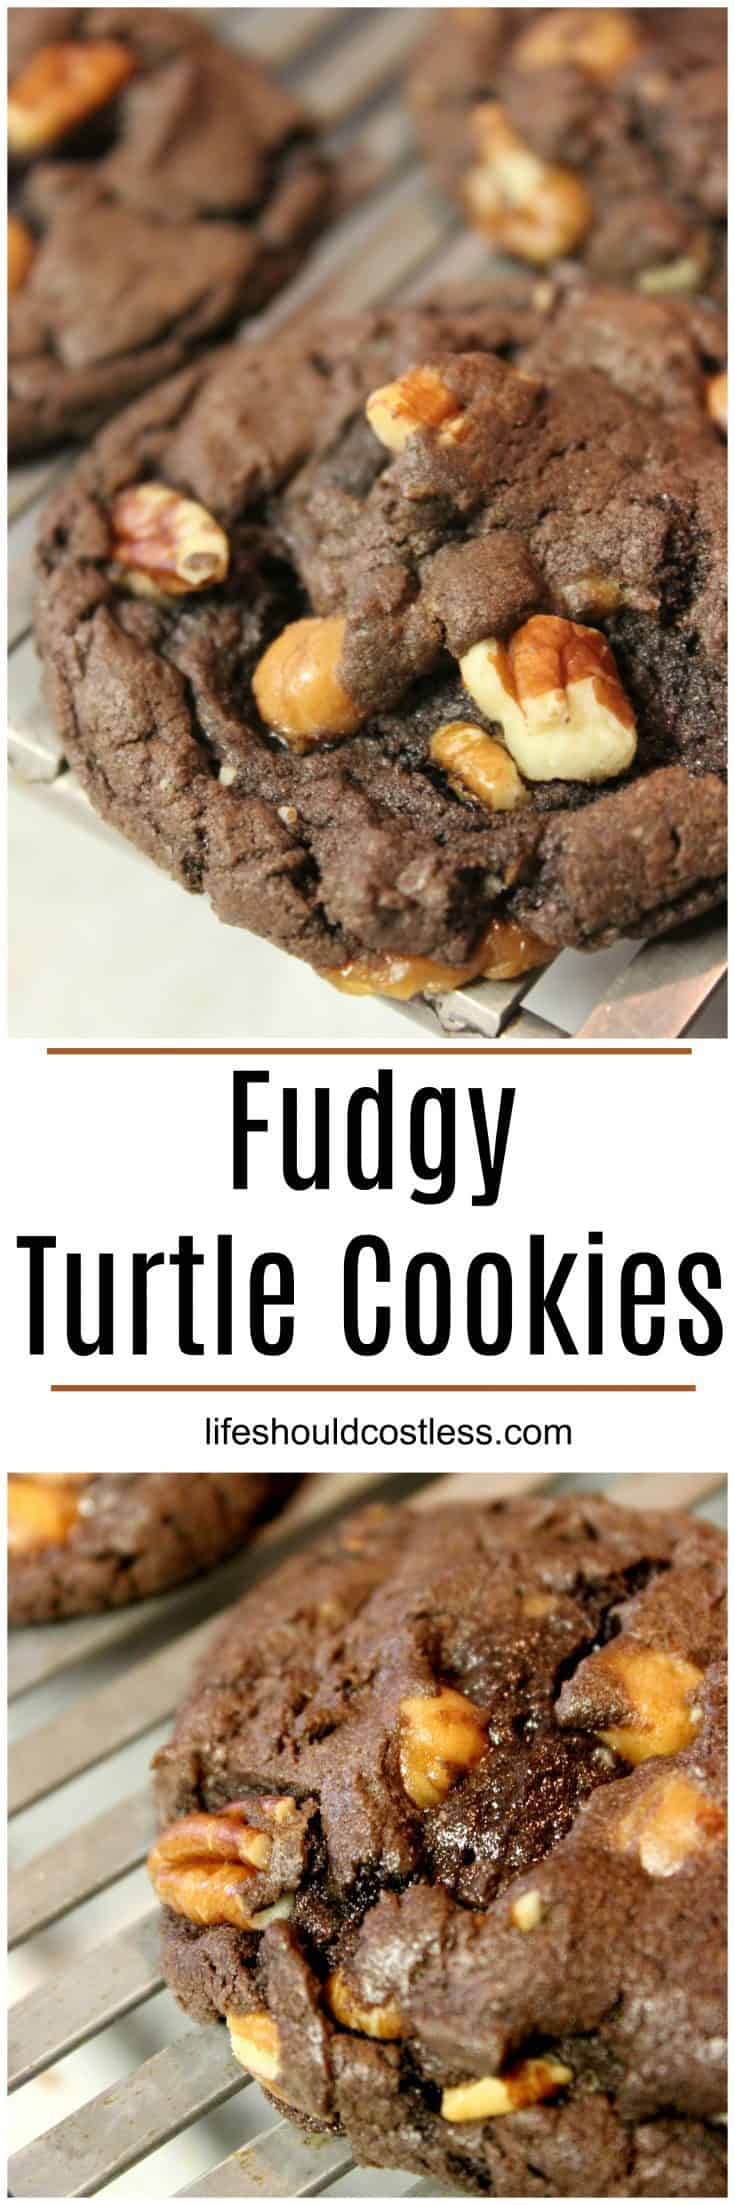 Easy Fudgy Turtle Cookies. They are a tasty cake mix based cookie that take five minutes of prep. They're so delicious! lifeshouldcostless.com